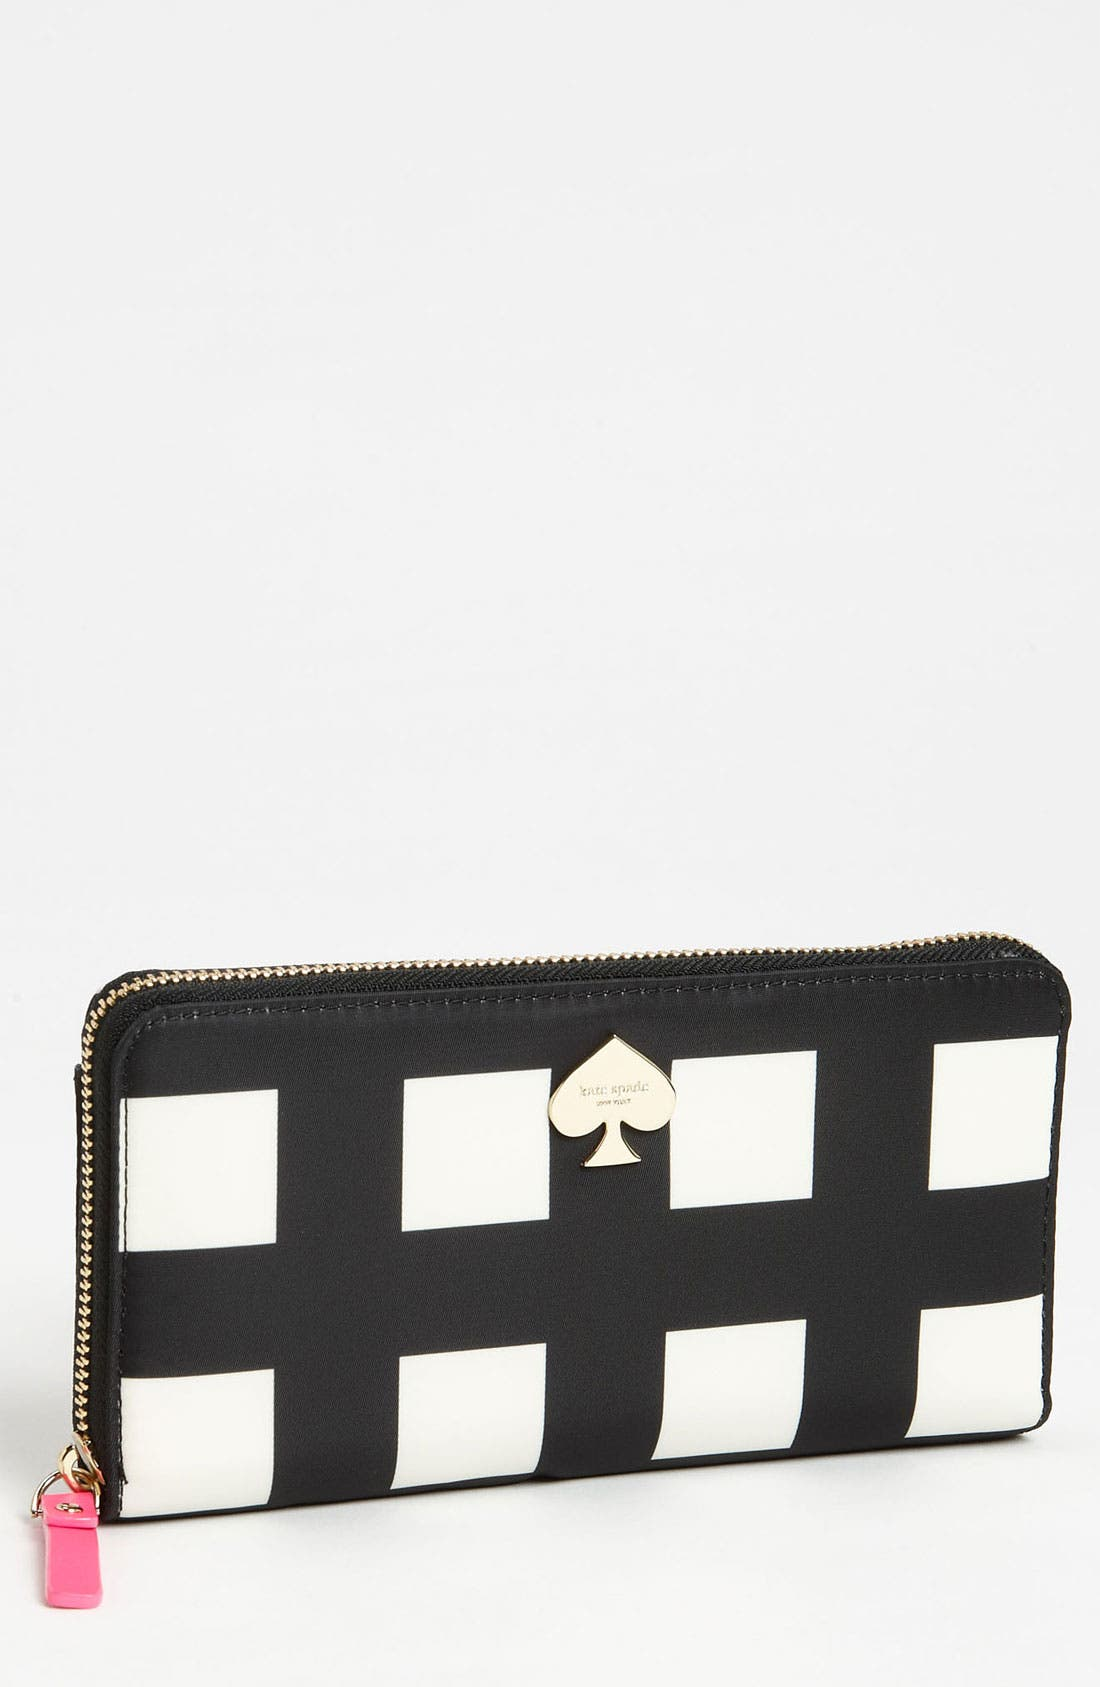 Main Image - kate spade new york 'berry street - lacey' zip around wallet